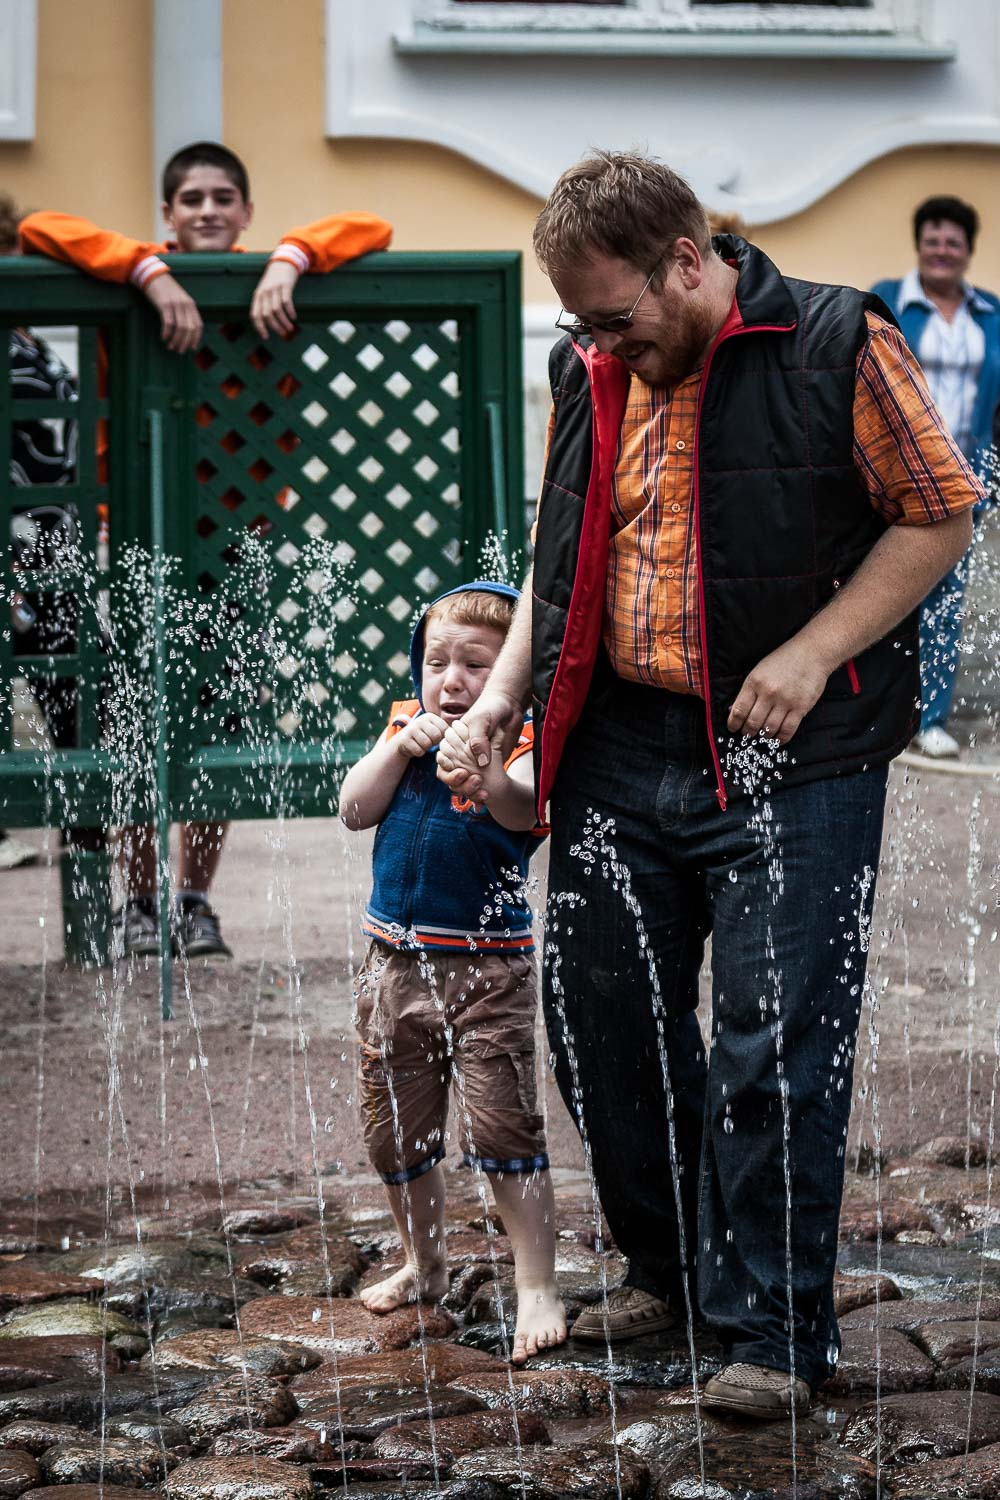 A  young boy , surprised by water sprouting from the ground at  Peterhof Palace  near  St. Petersburg, Russia .